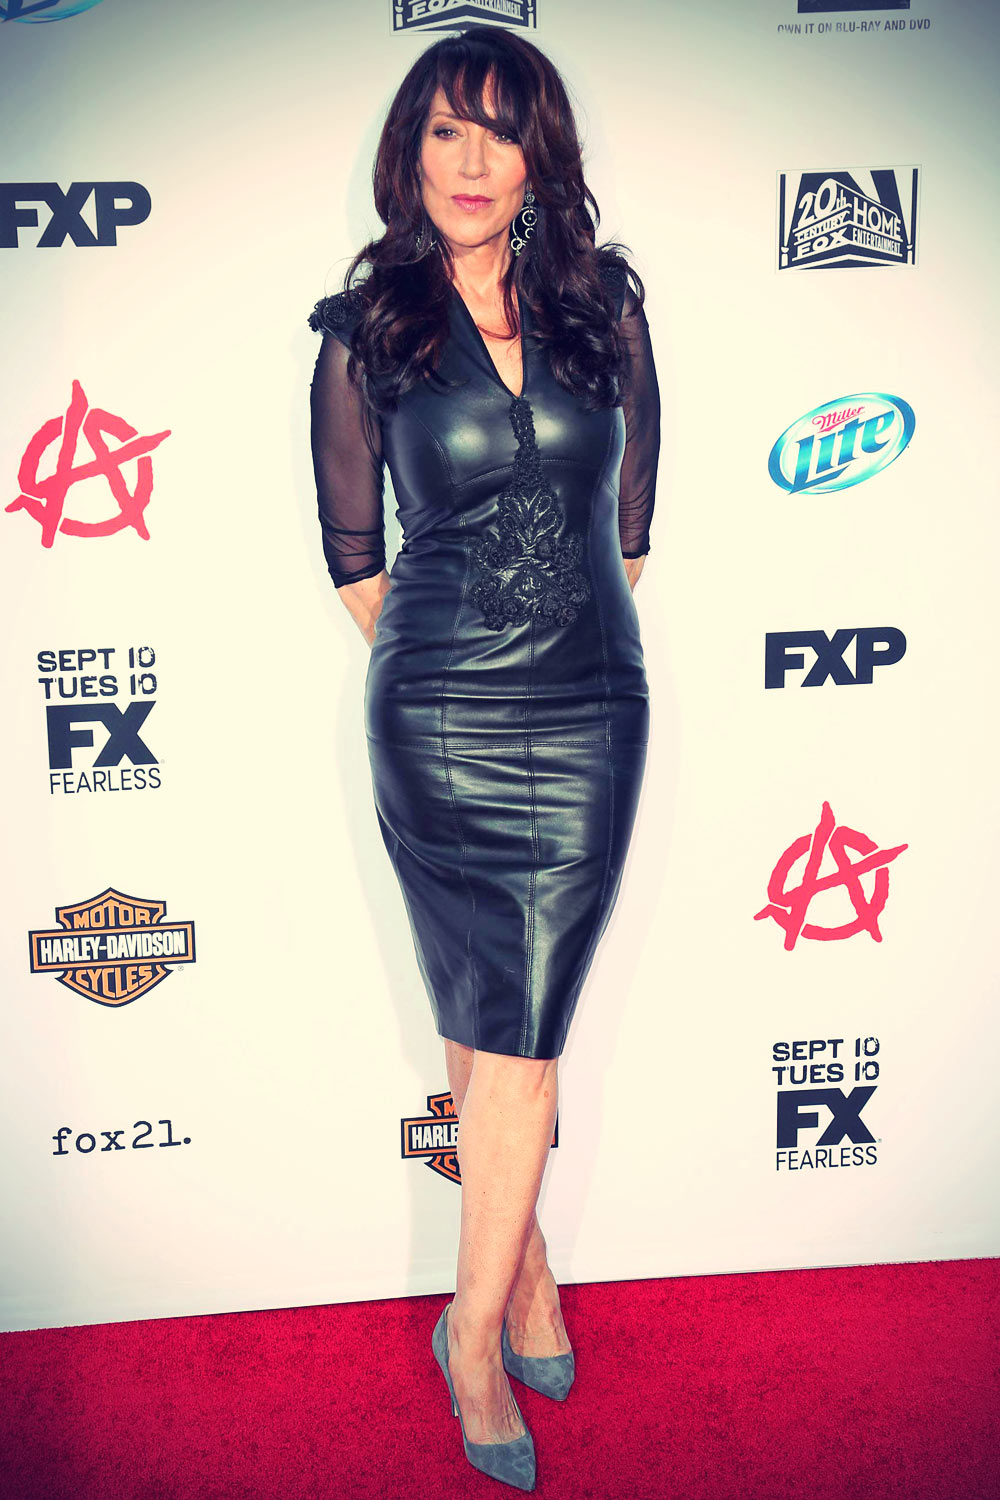 Katey Sagal attends Season 6 Premiere of FX's Sons Of Anarchy